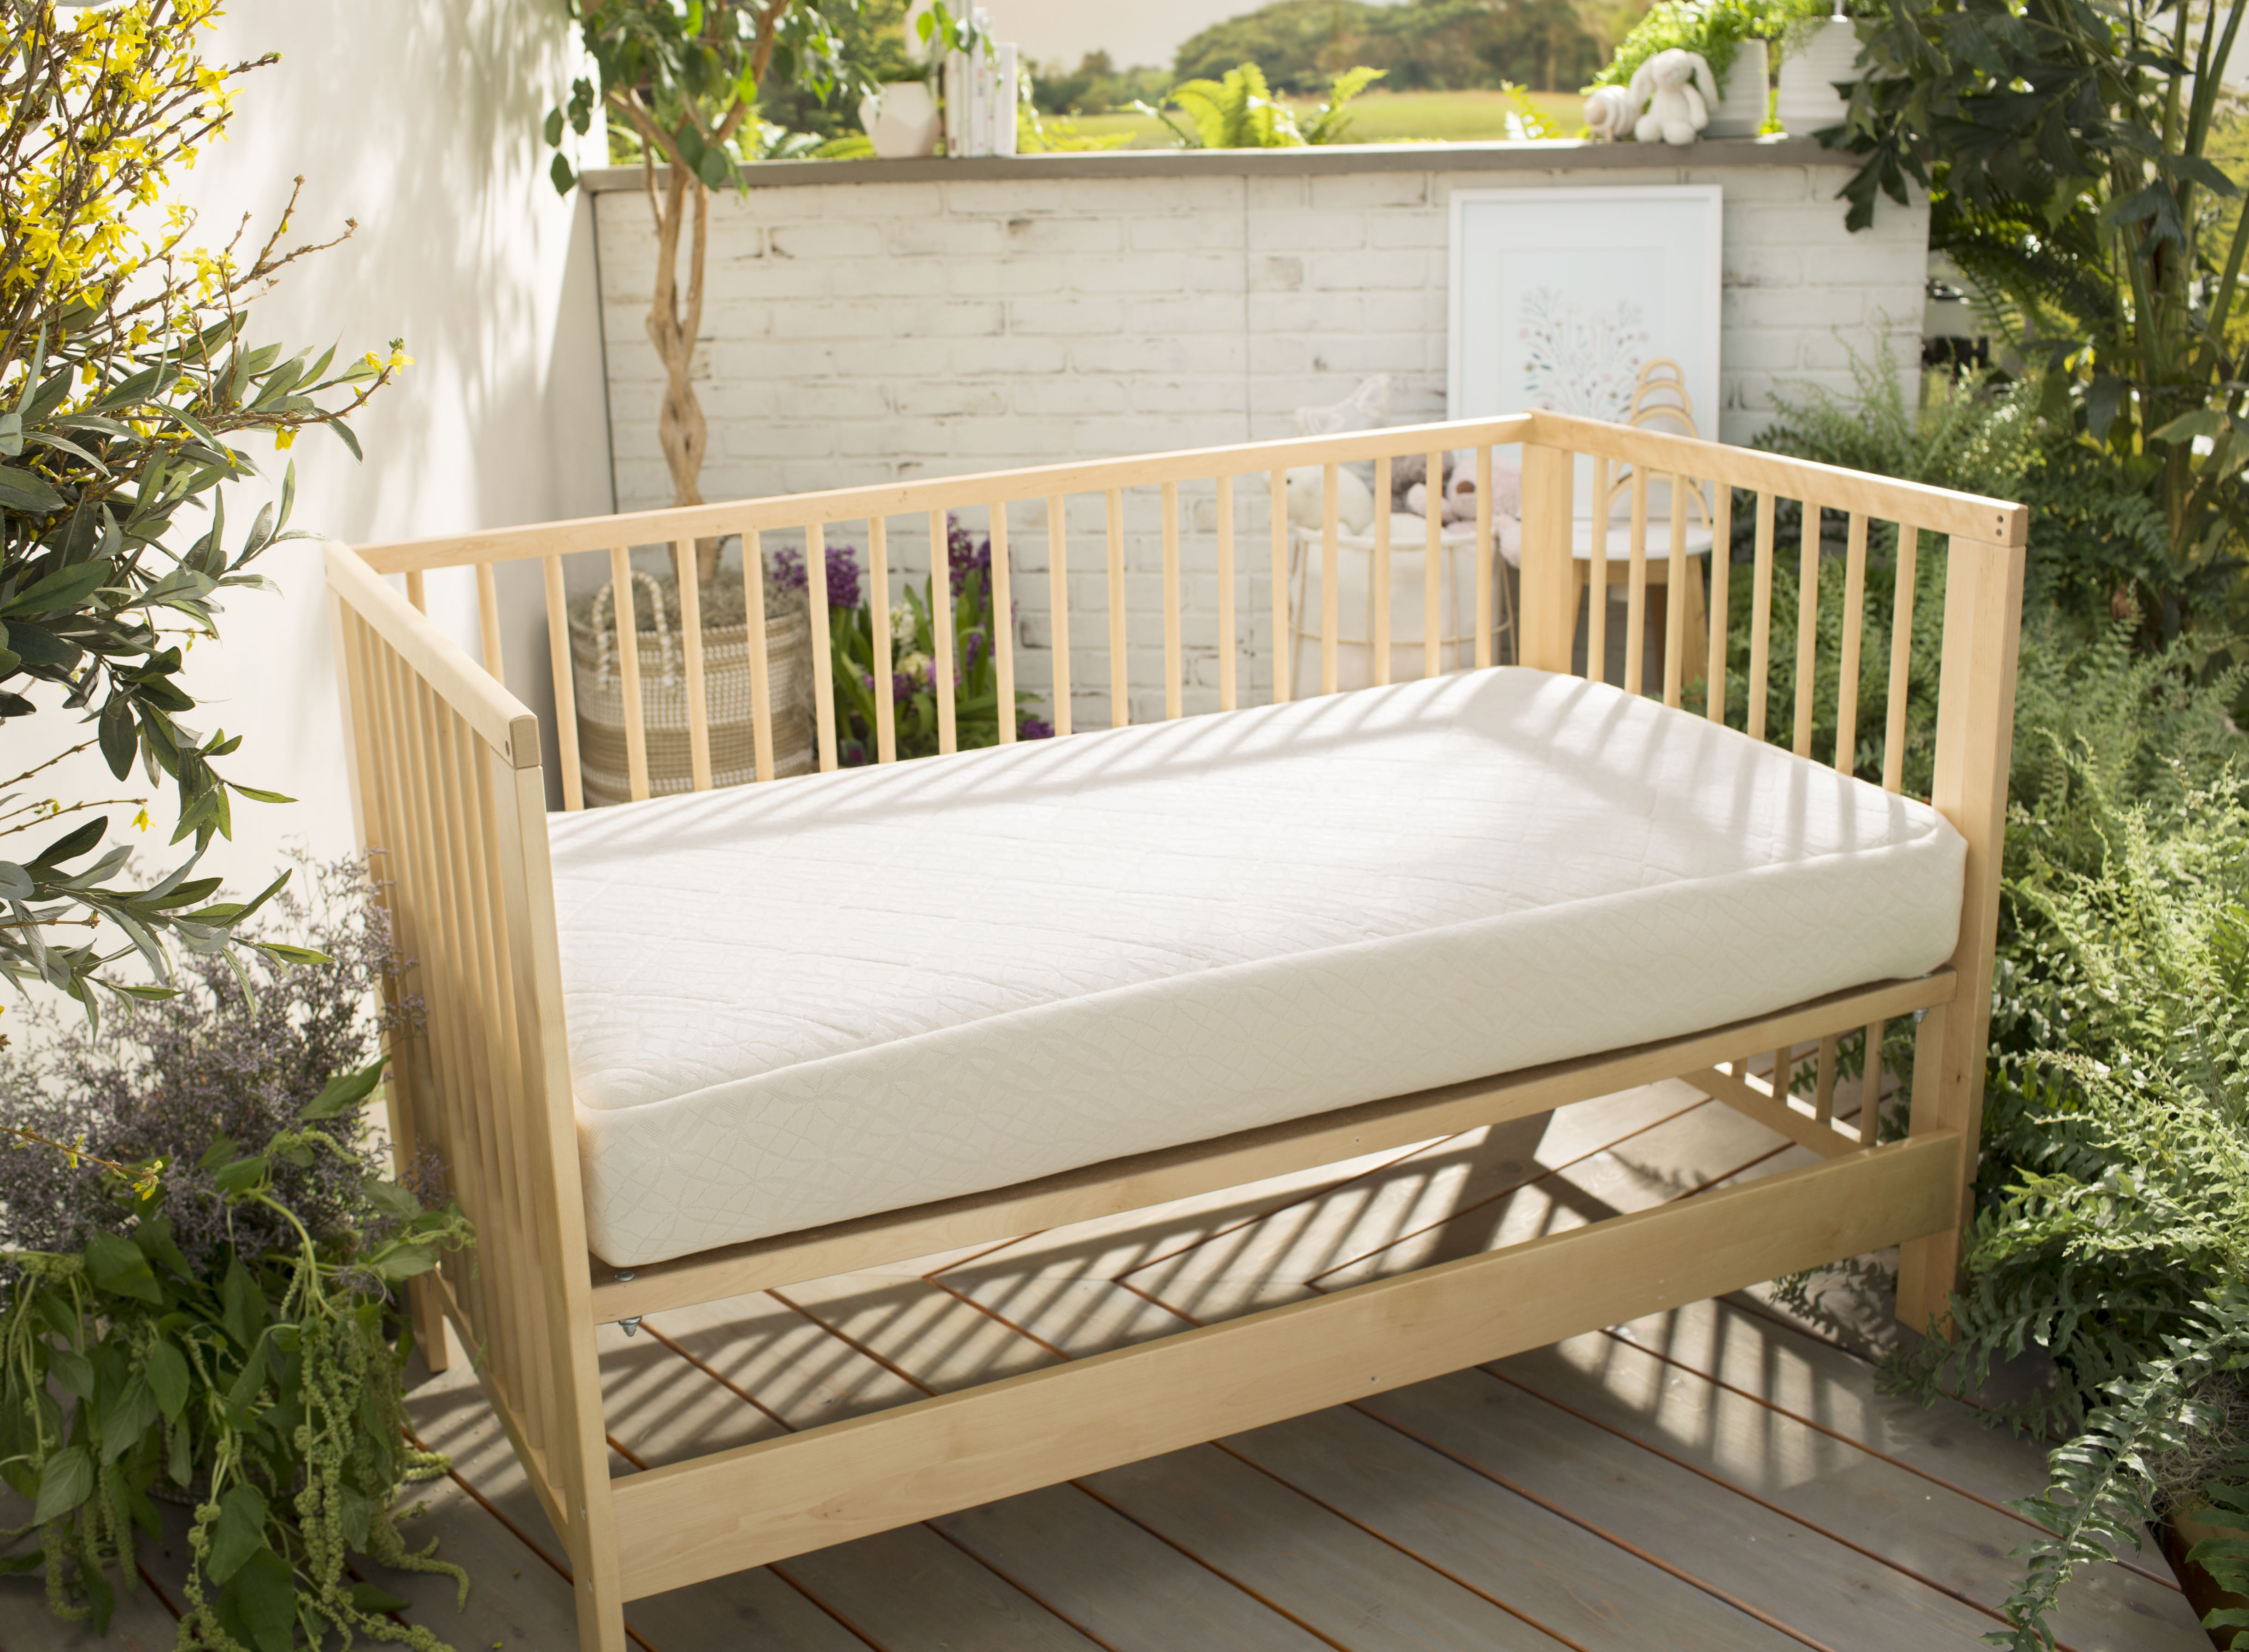 Fullsize Of Breathable Crib Mattress